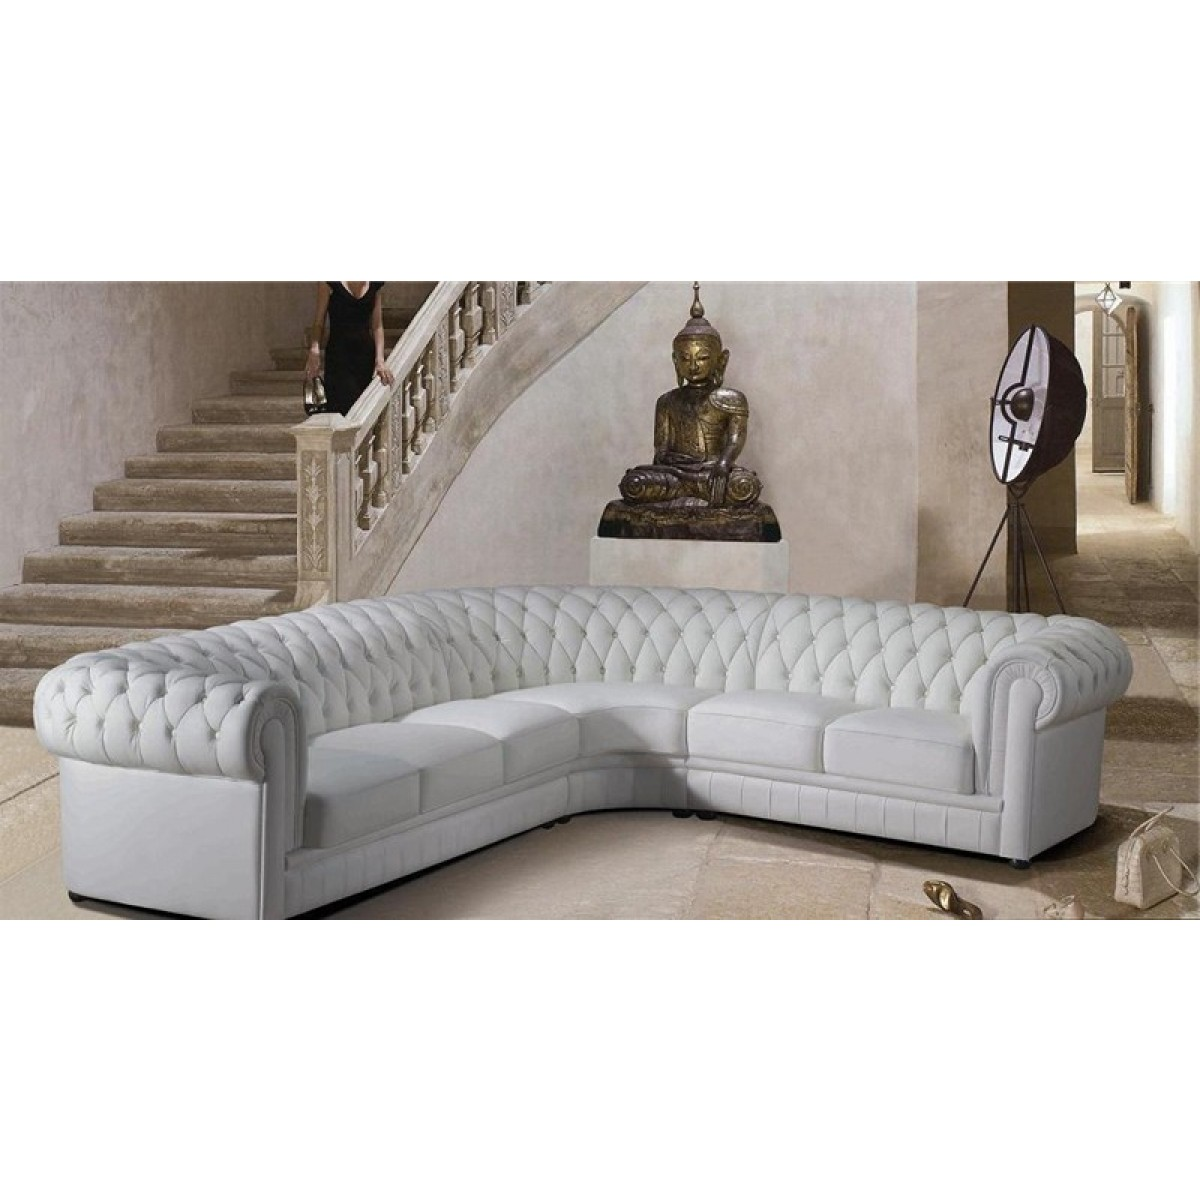 Grand canap d 39 angle en cuir pleine fleur chesterfield pop - Canape chesterfield cuir gris ...